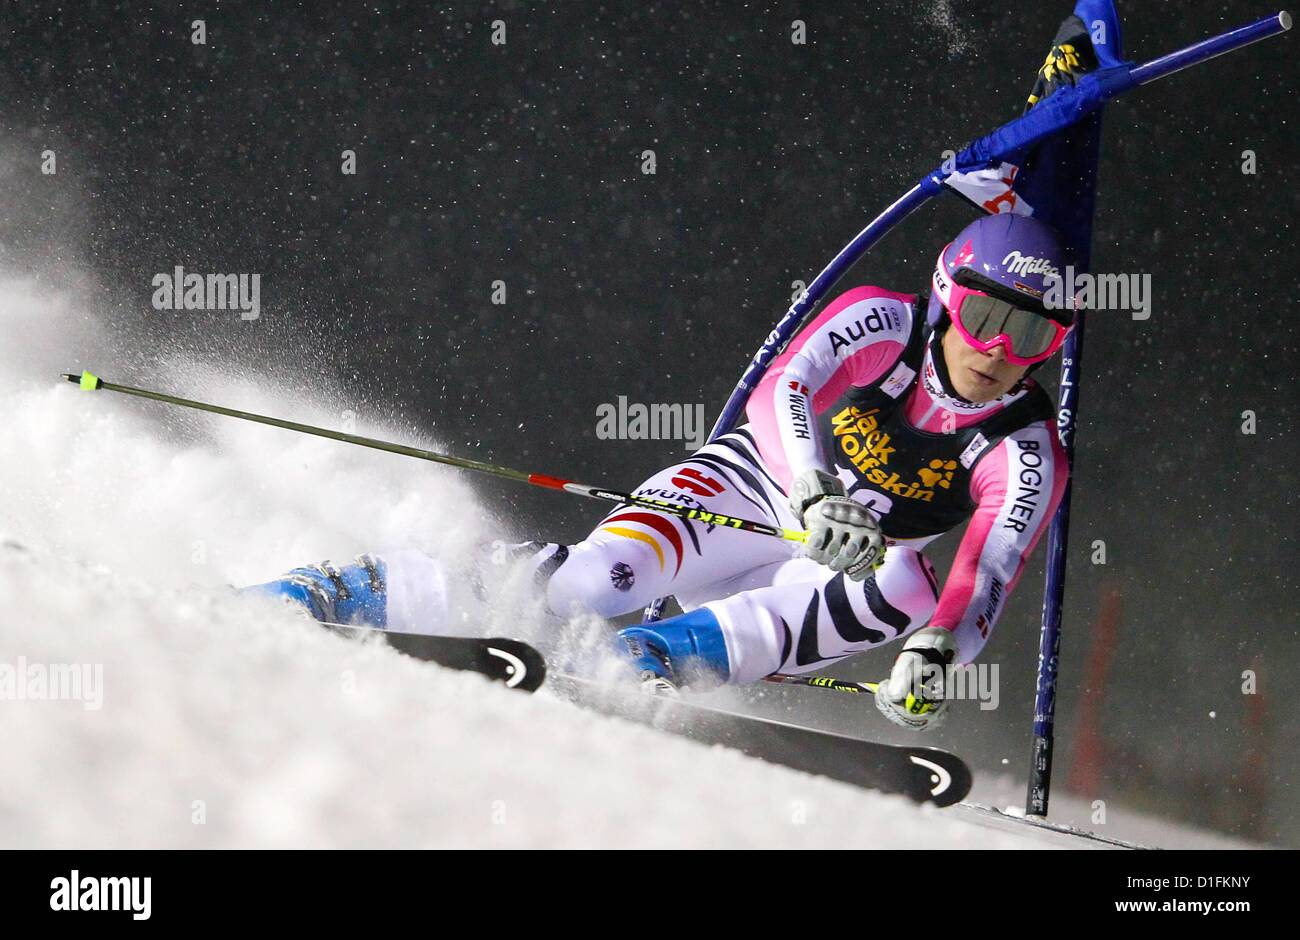 19.12.2012. Aare, Sweden.  FIS World Cup Giant slalom for women Picture shows Mary  Riesch ger  World Cup 2013 - Stock Image